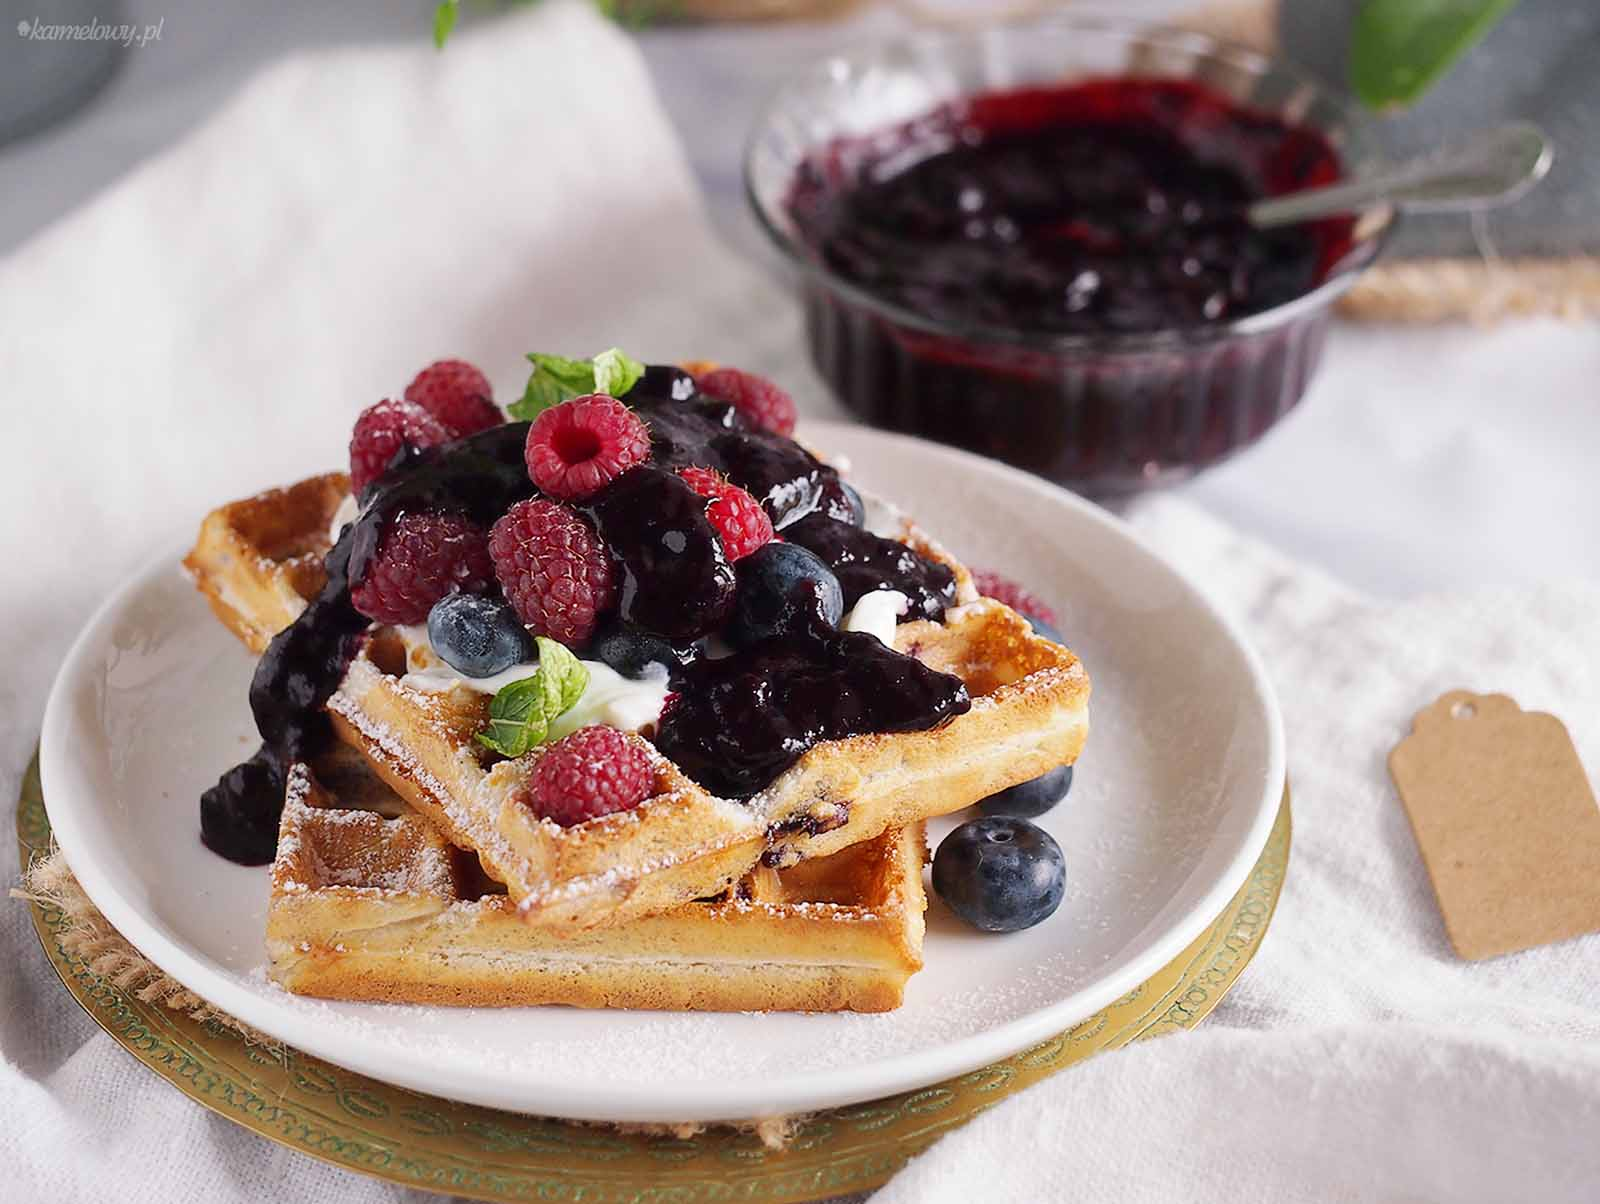 Gofry-jagodowe-ze-slodkim-twarozkiem-Blueberry-waffles-with-sweet-cream-cheese